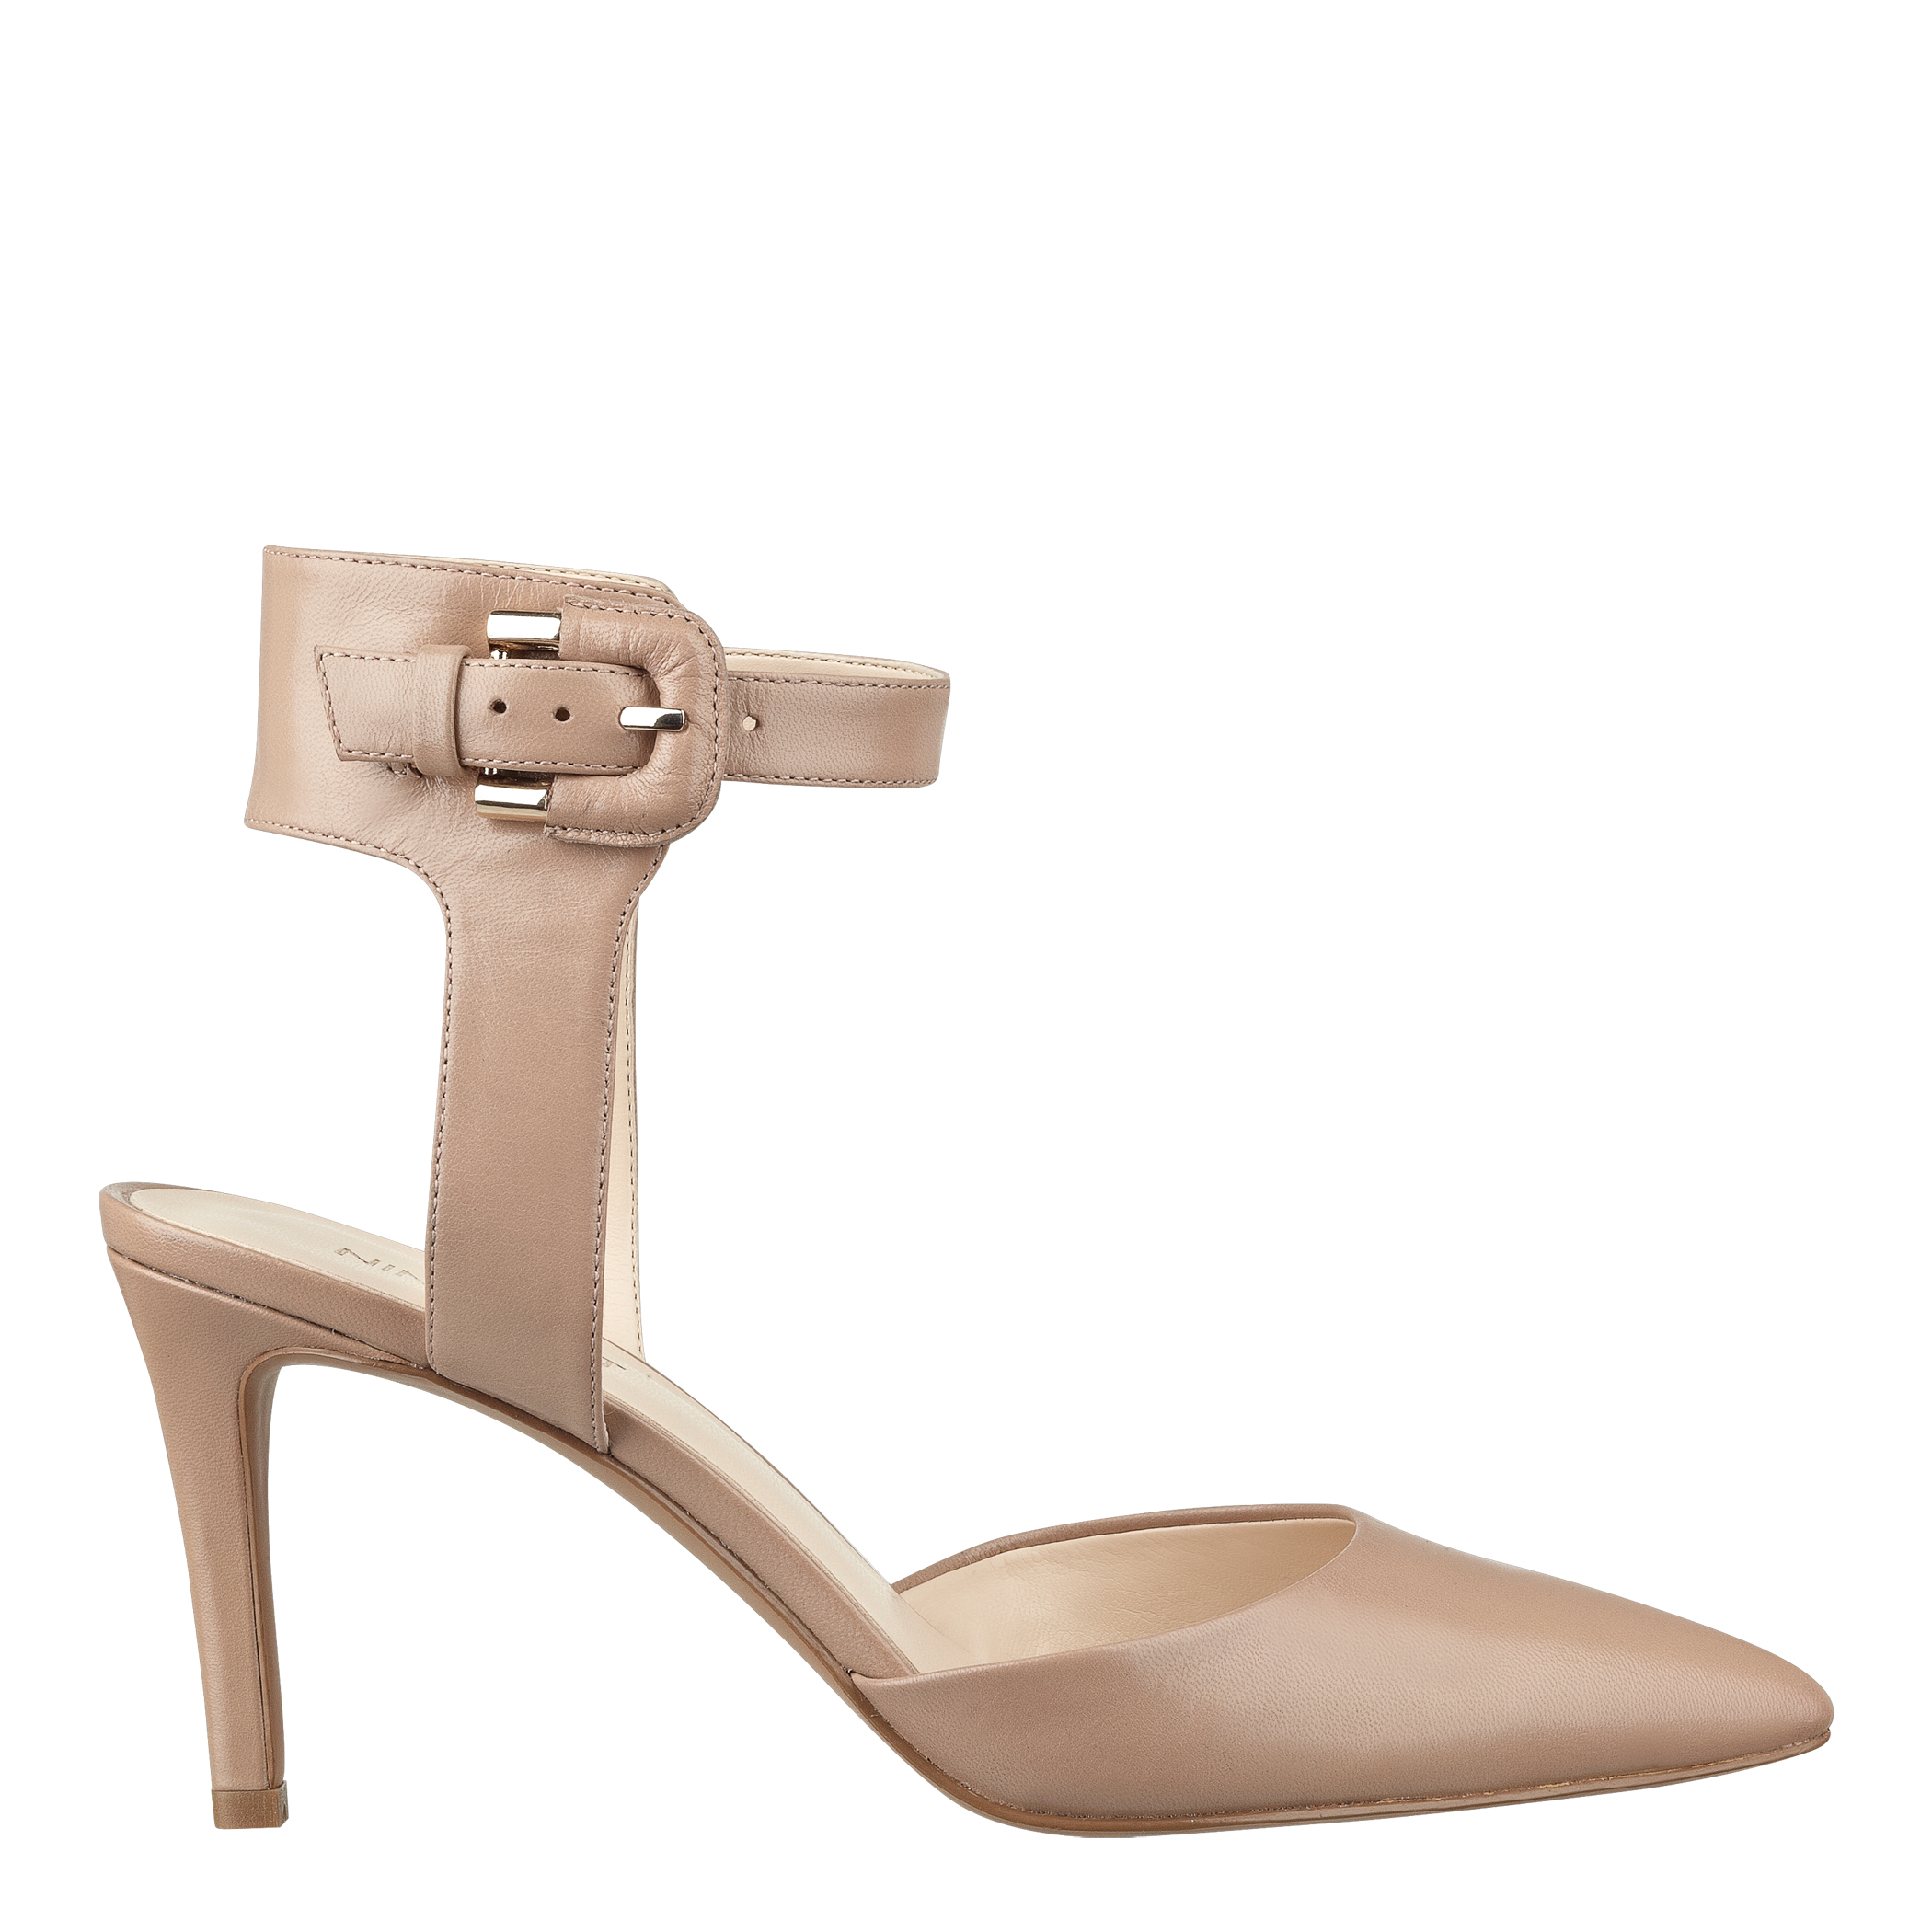 Latest Fashion of Stiletto & Heels Collection for women by Nine West (6)